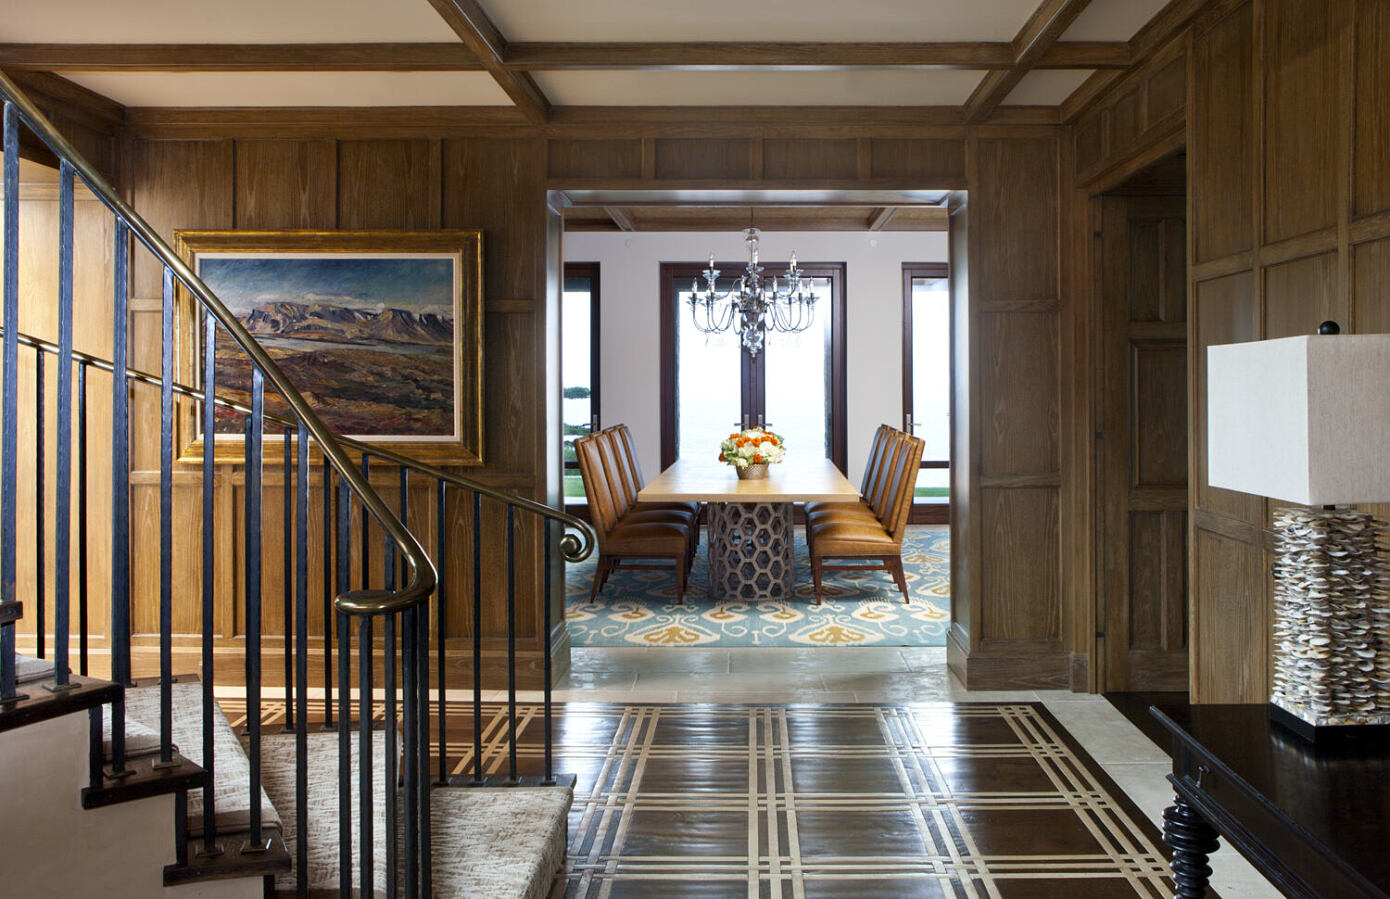 The Big Sur Residence by Richard Beard Architects